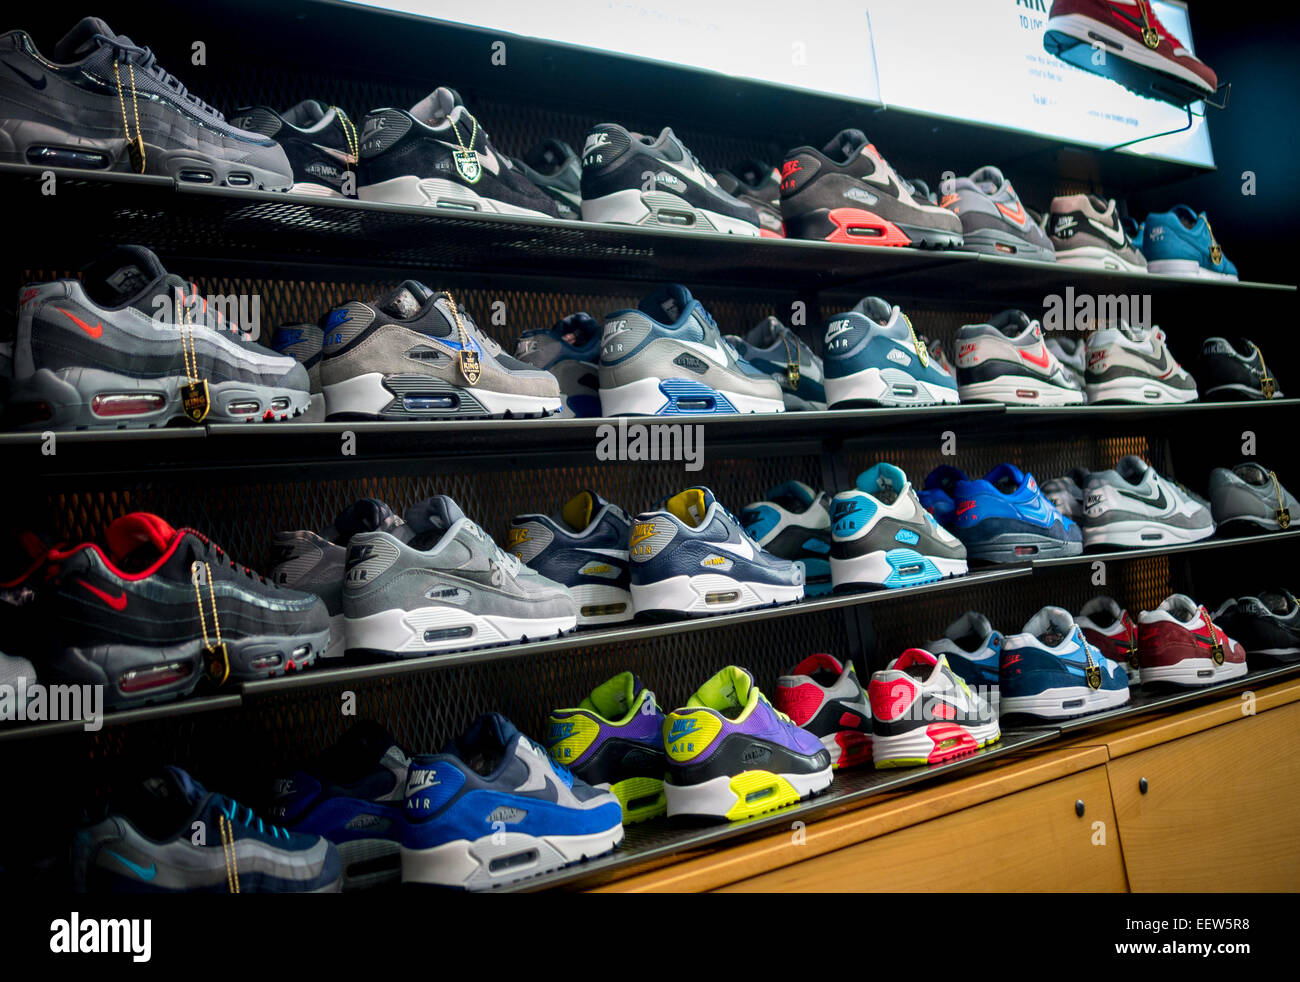 All the latest trainers and sneakers from Offspring, your Sneaker Boutique. Brands includes Vans, Converse, Nike Jordans and many more.